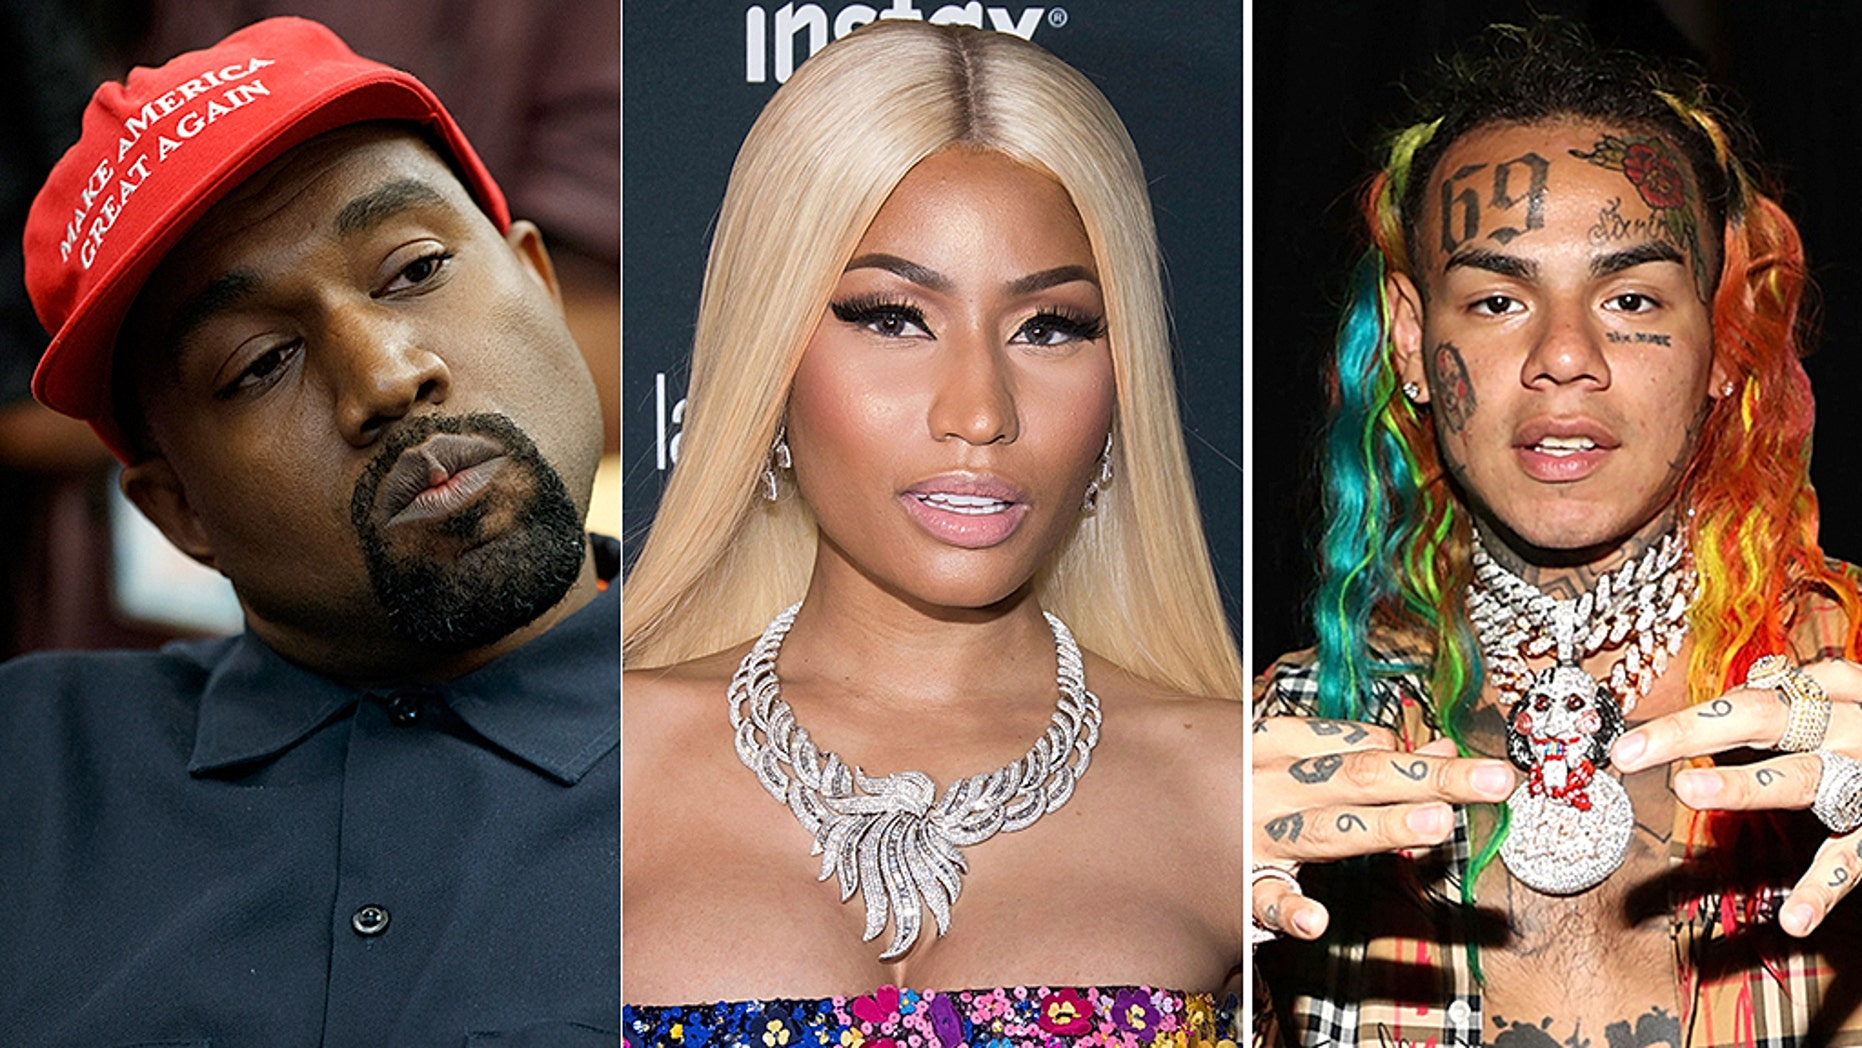 Shots fired outside Kanye West, Tekashi 6ix9ine music video set